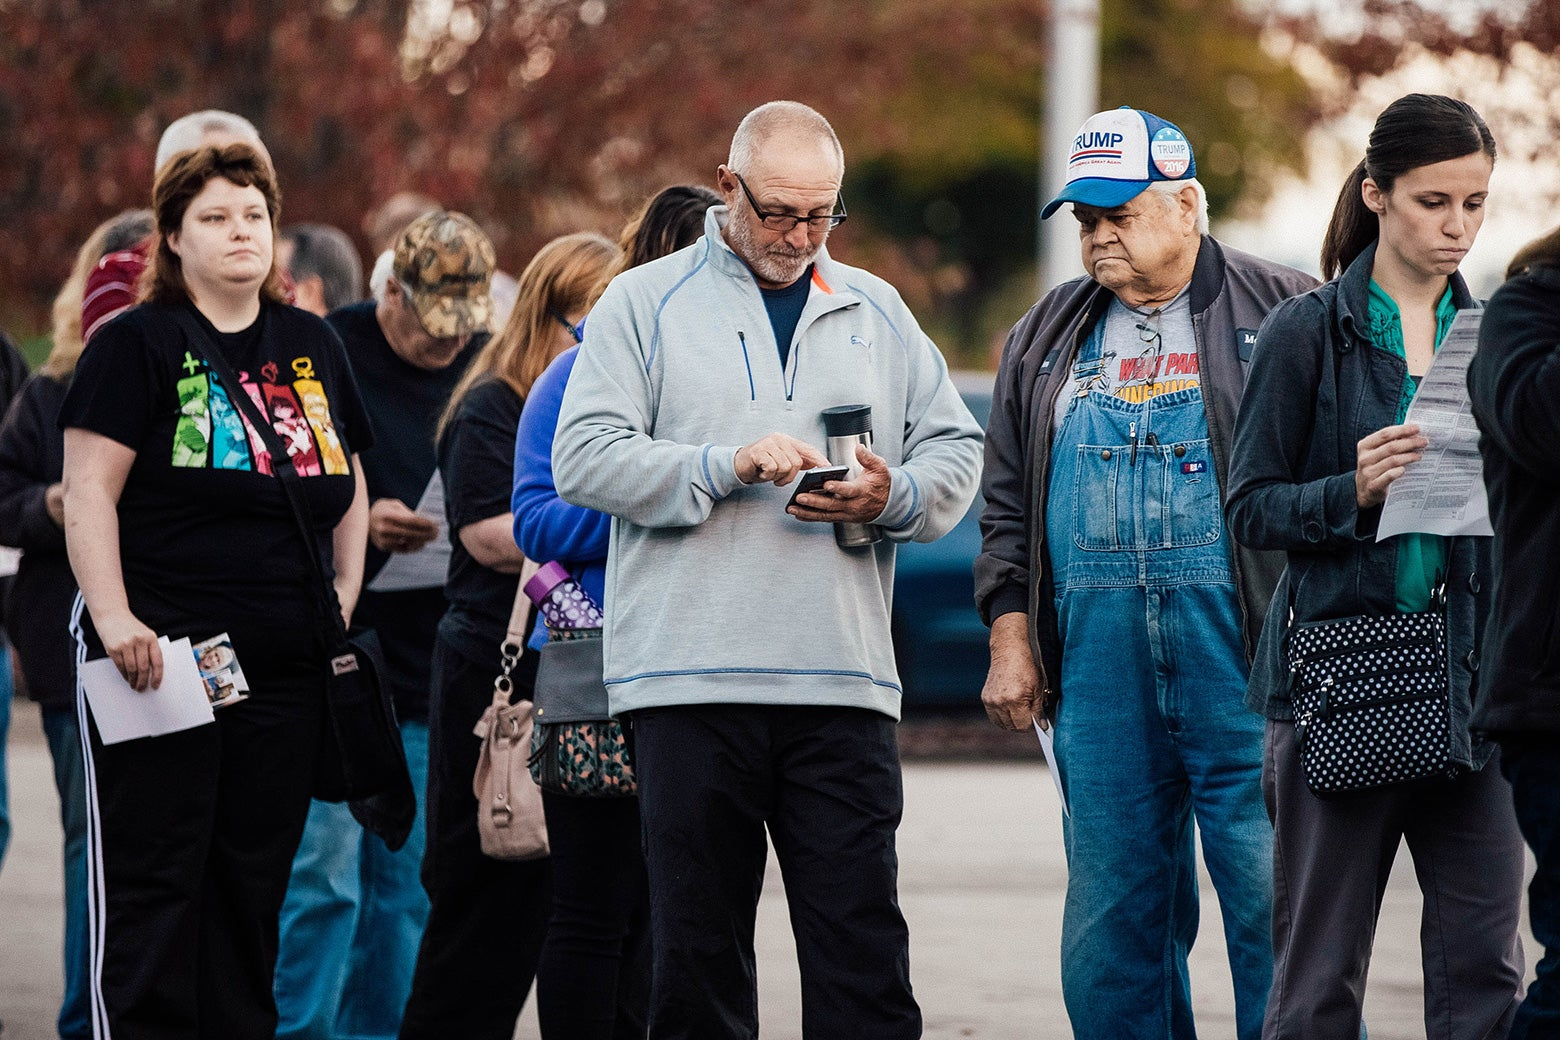 Voters wait in line to cast their ballots on Nov. 8, 2016, in Independence, Missouri.